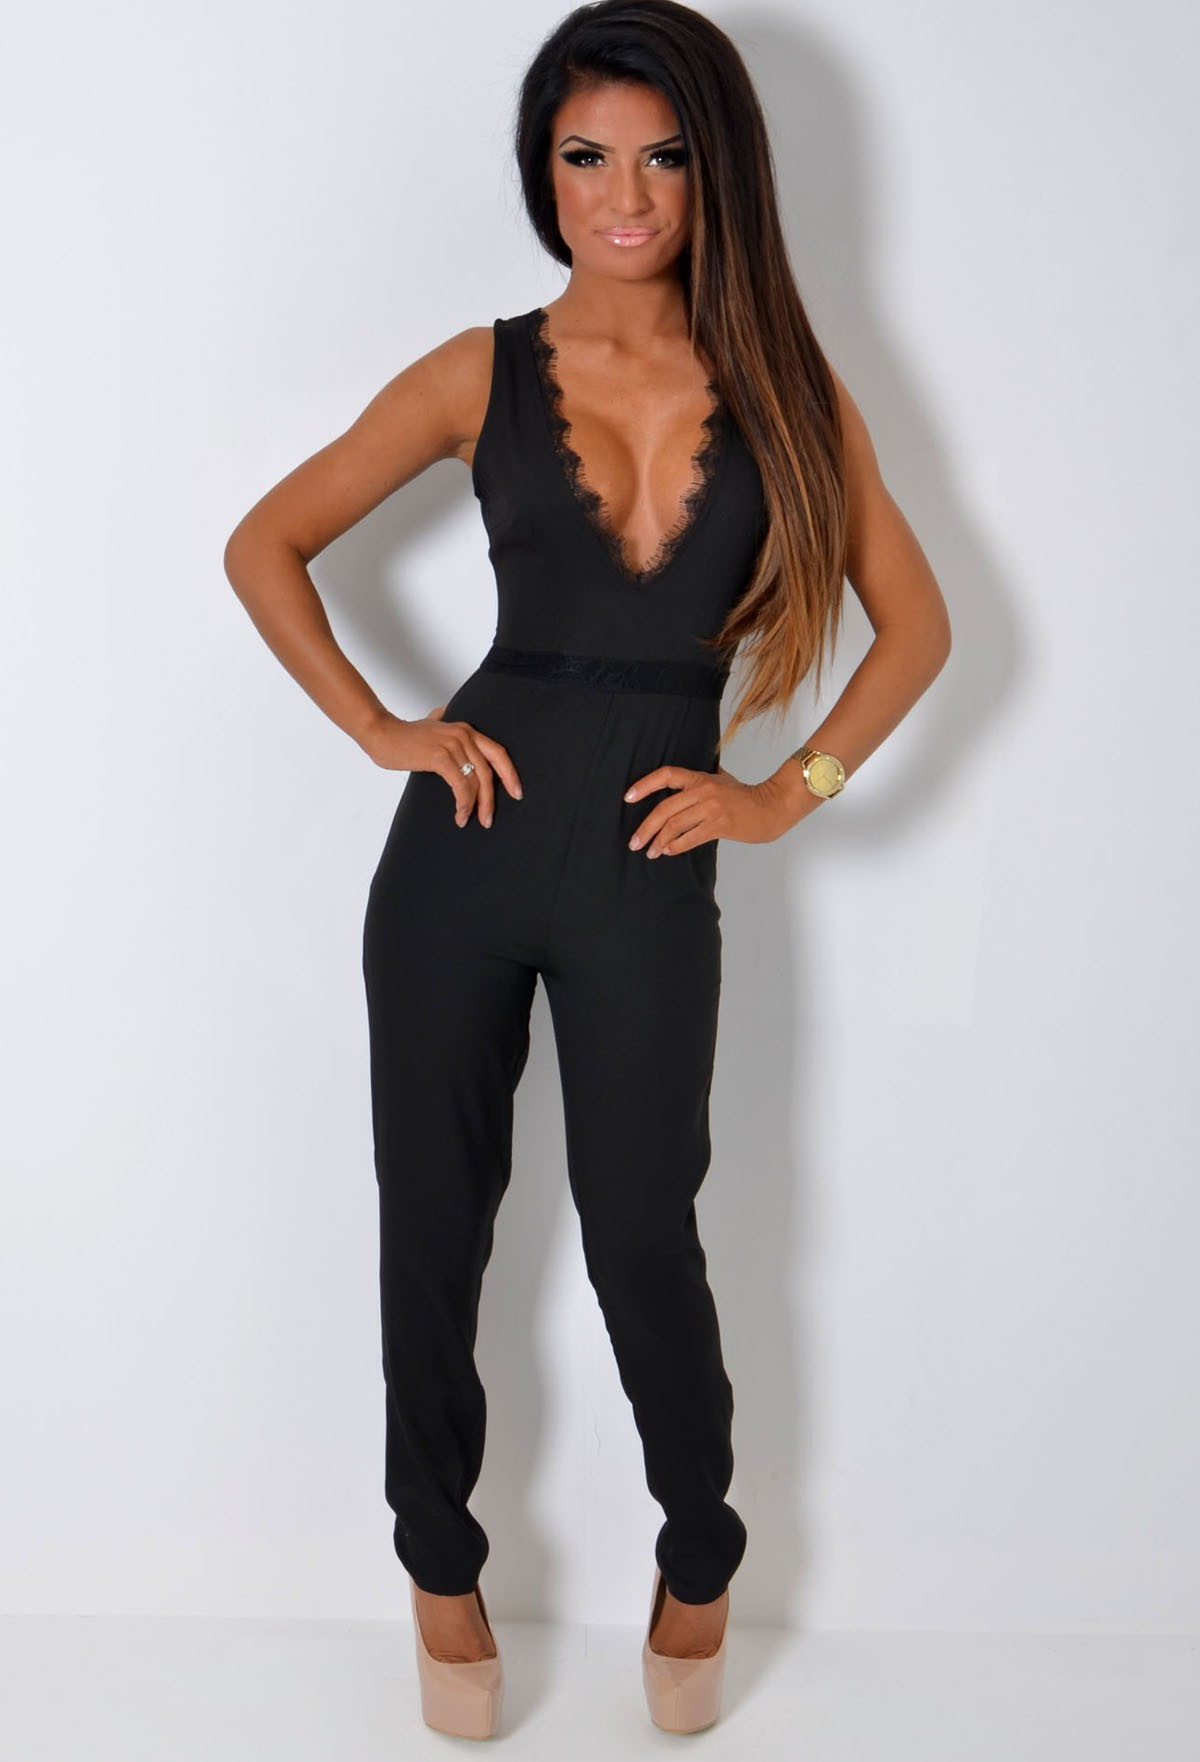 Zuzu black lace detail super plunge jumpsuit